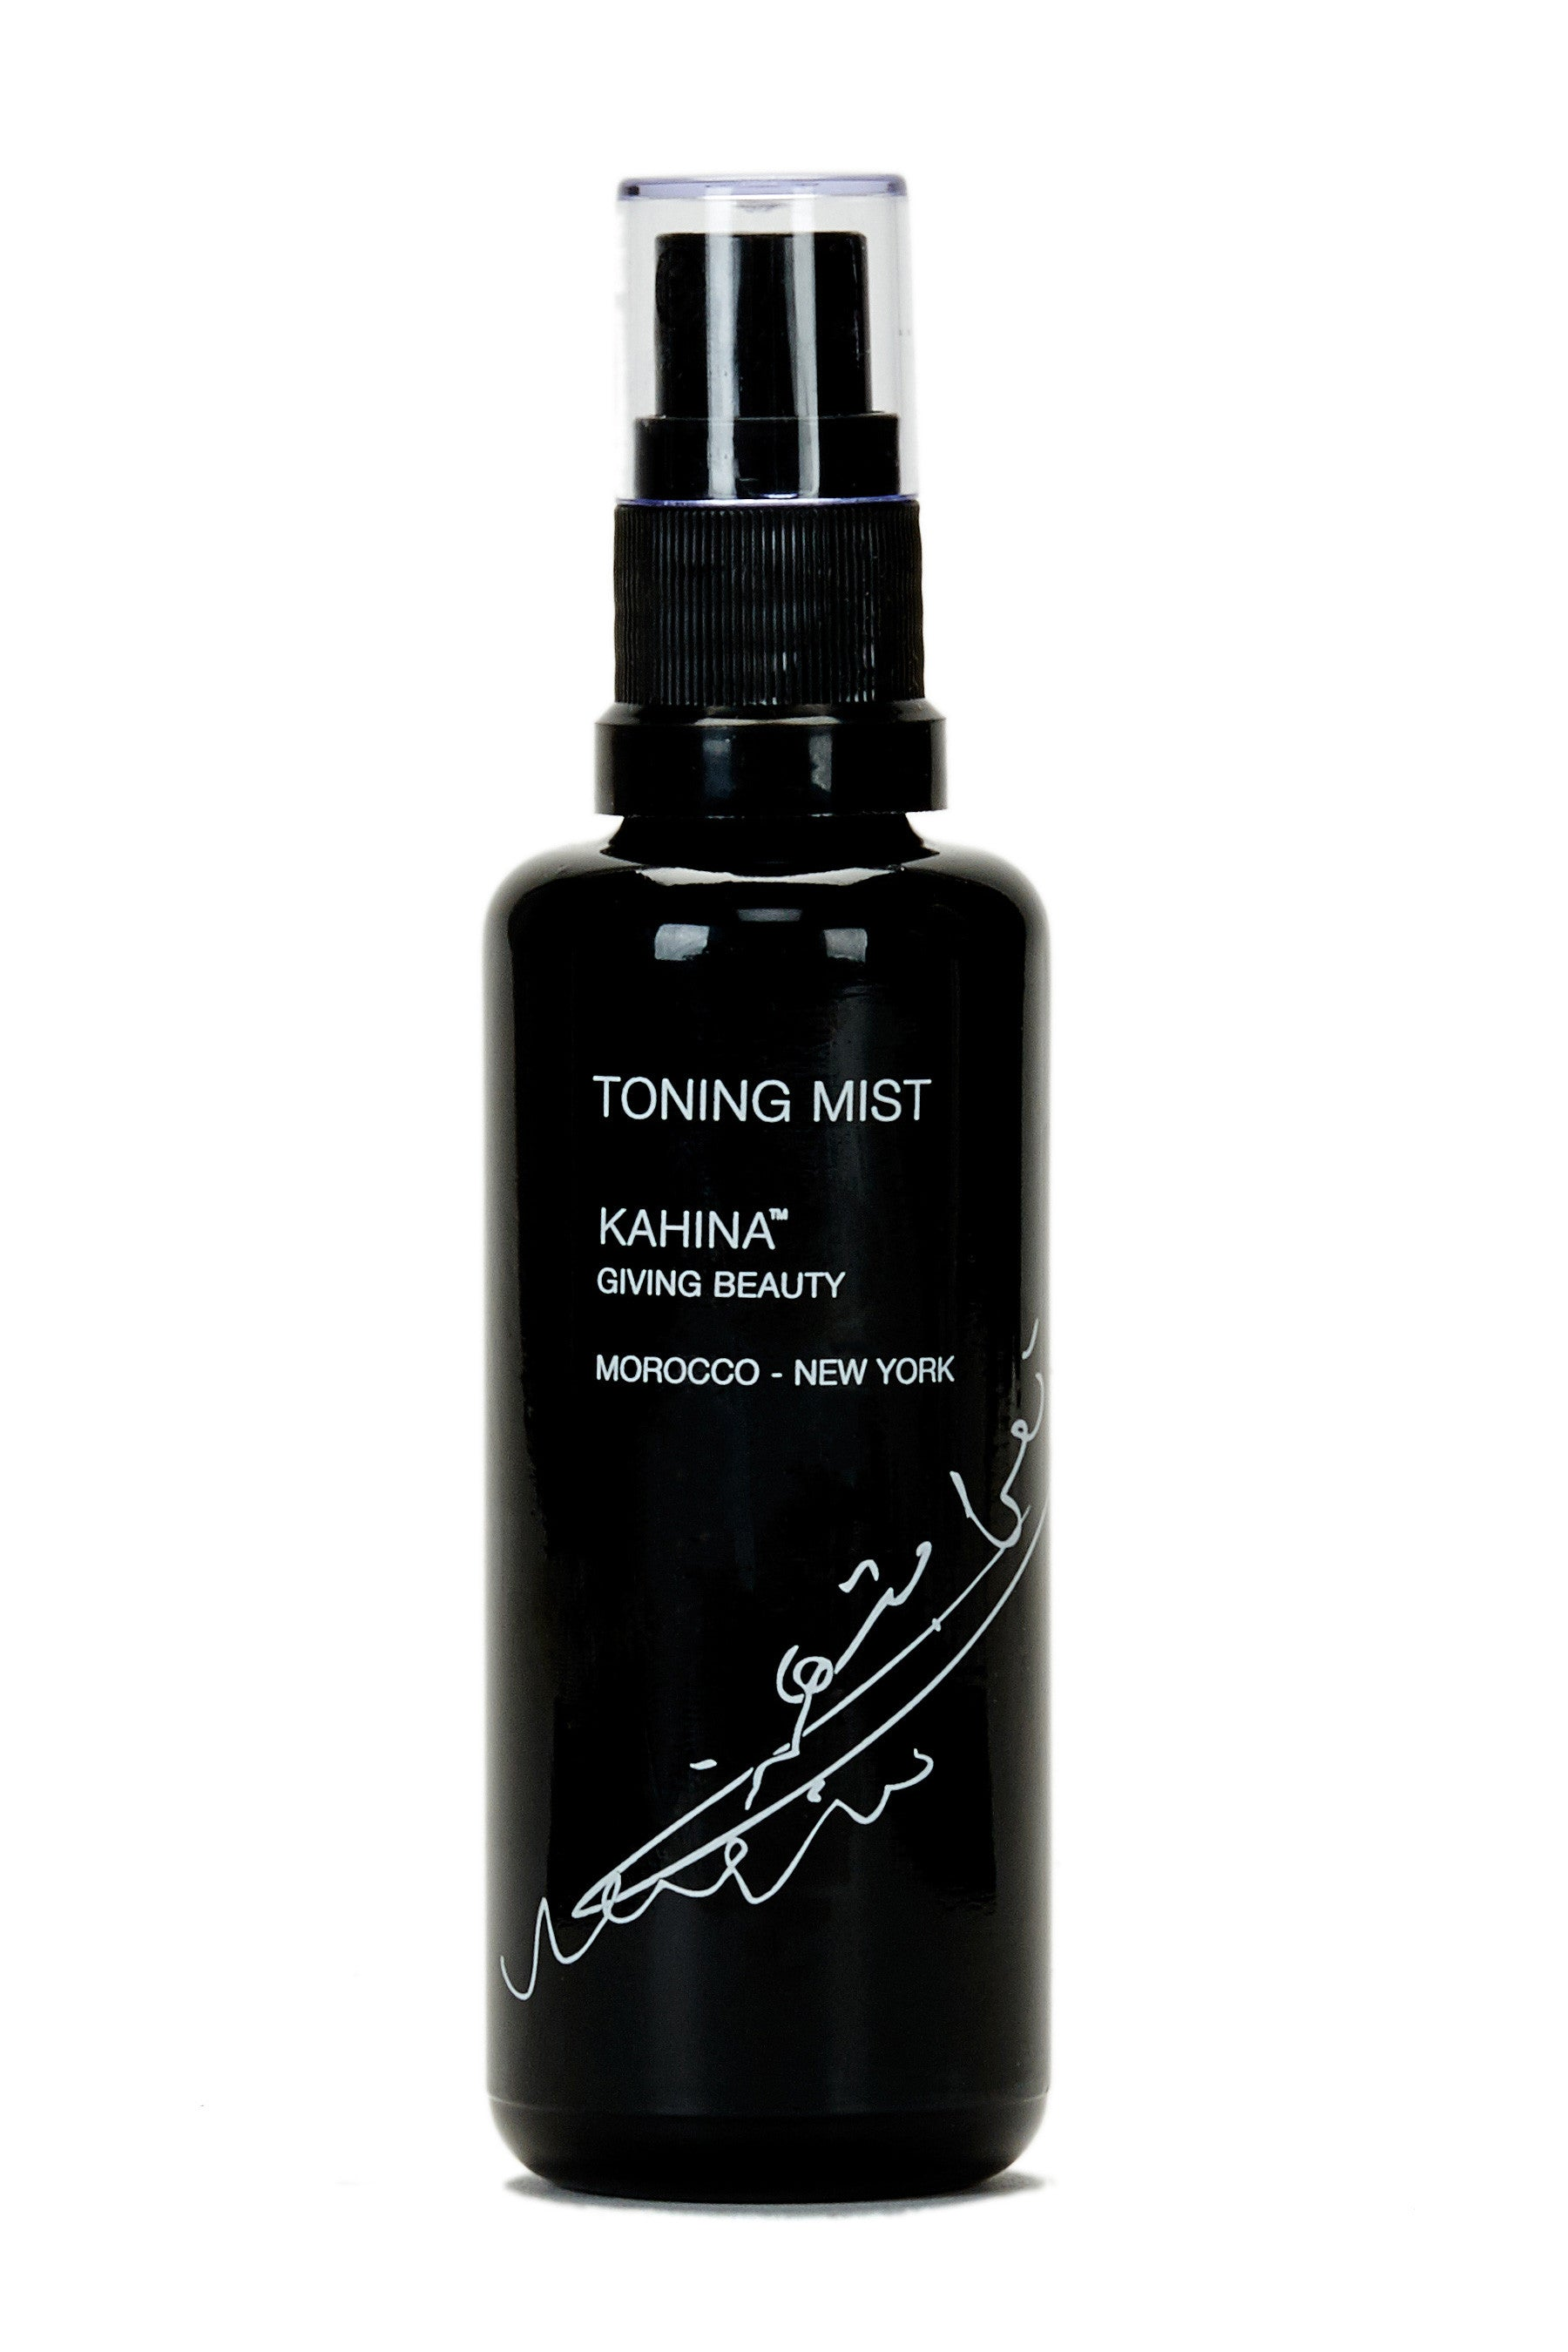 Toning Mist - Kahina Giving Beauty - OXOSI